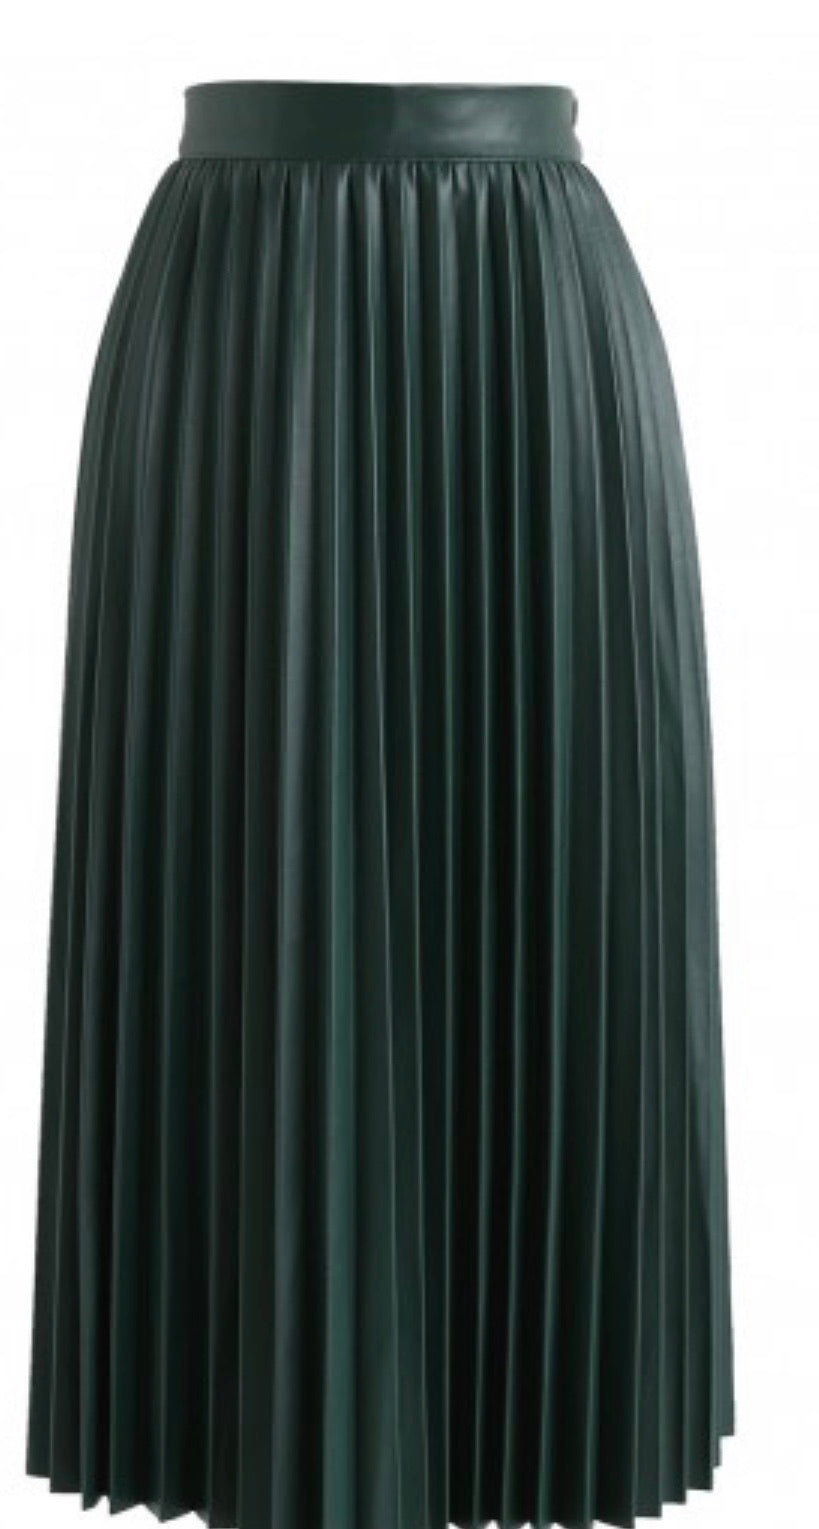 Hunter Green Faux Leather Midi Skirt